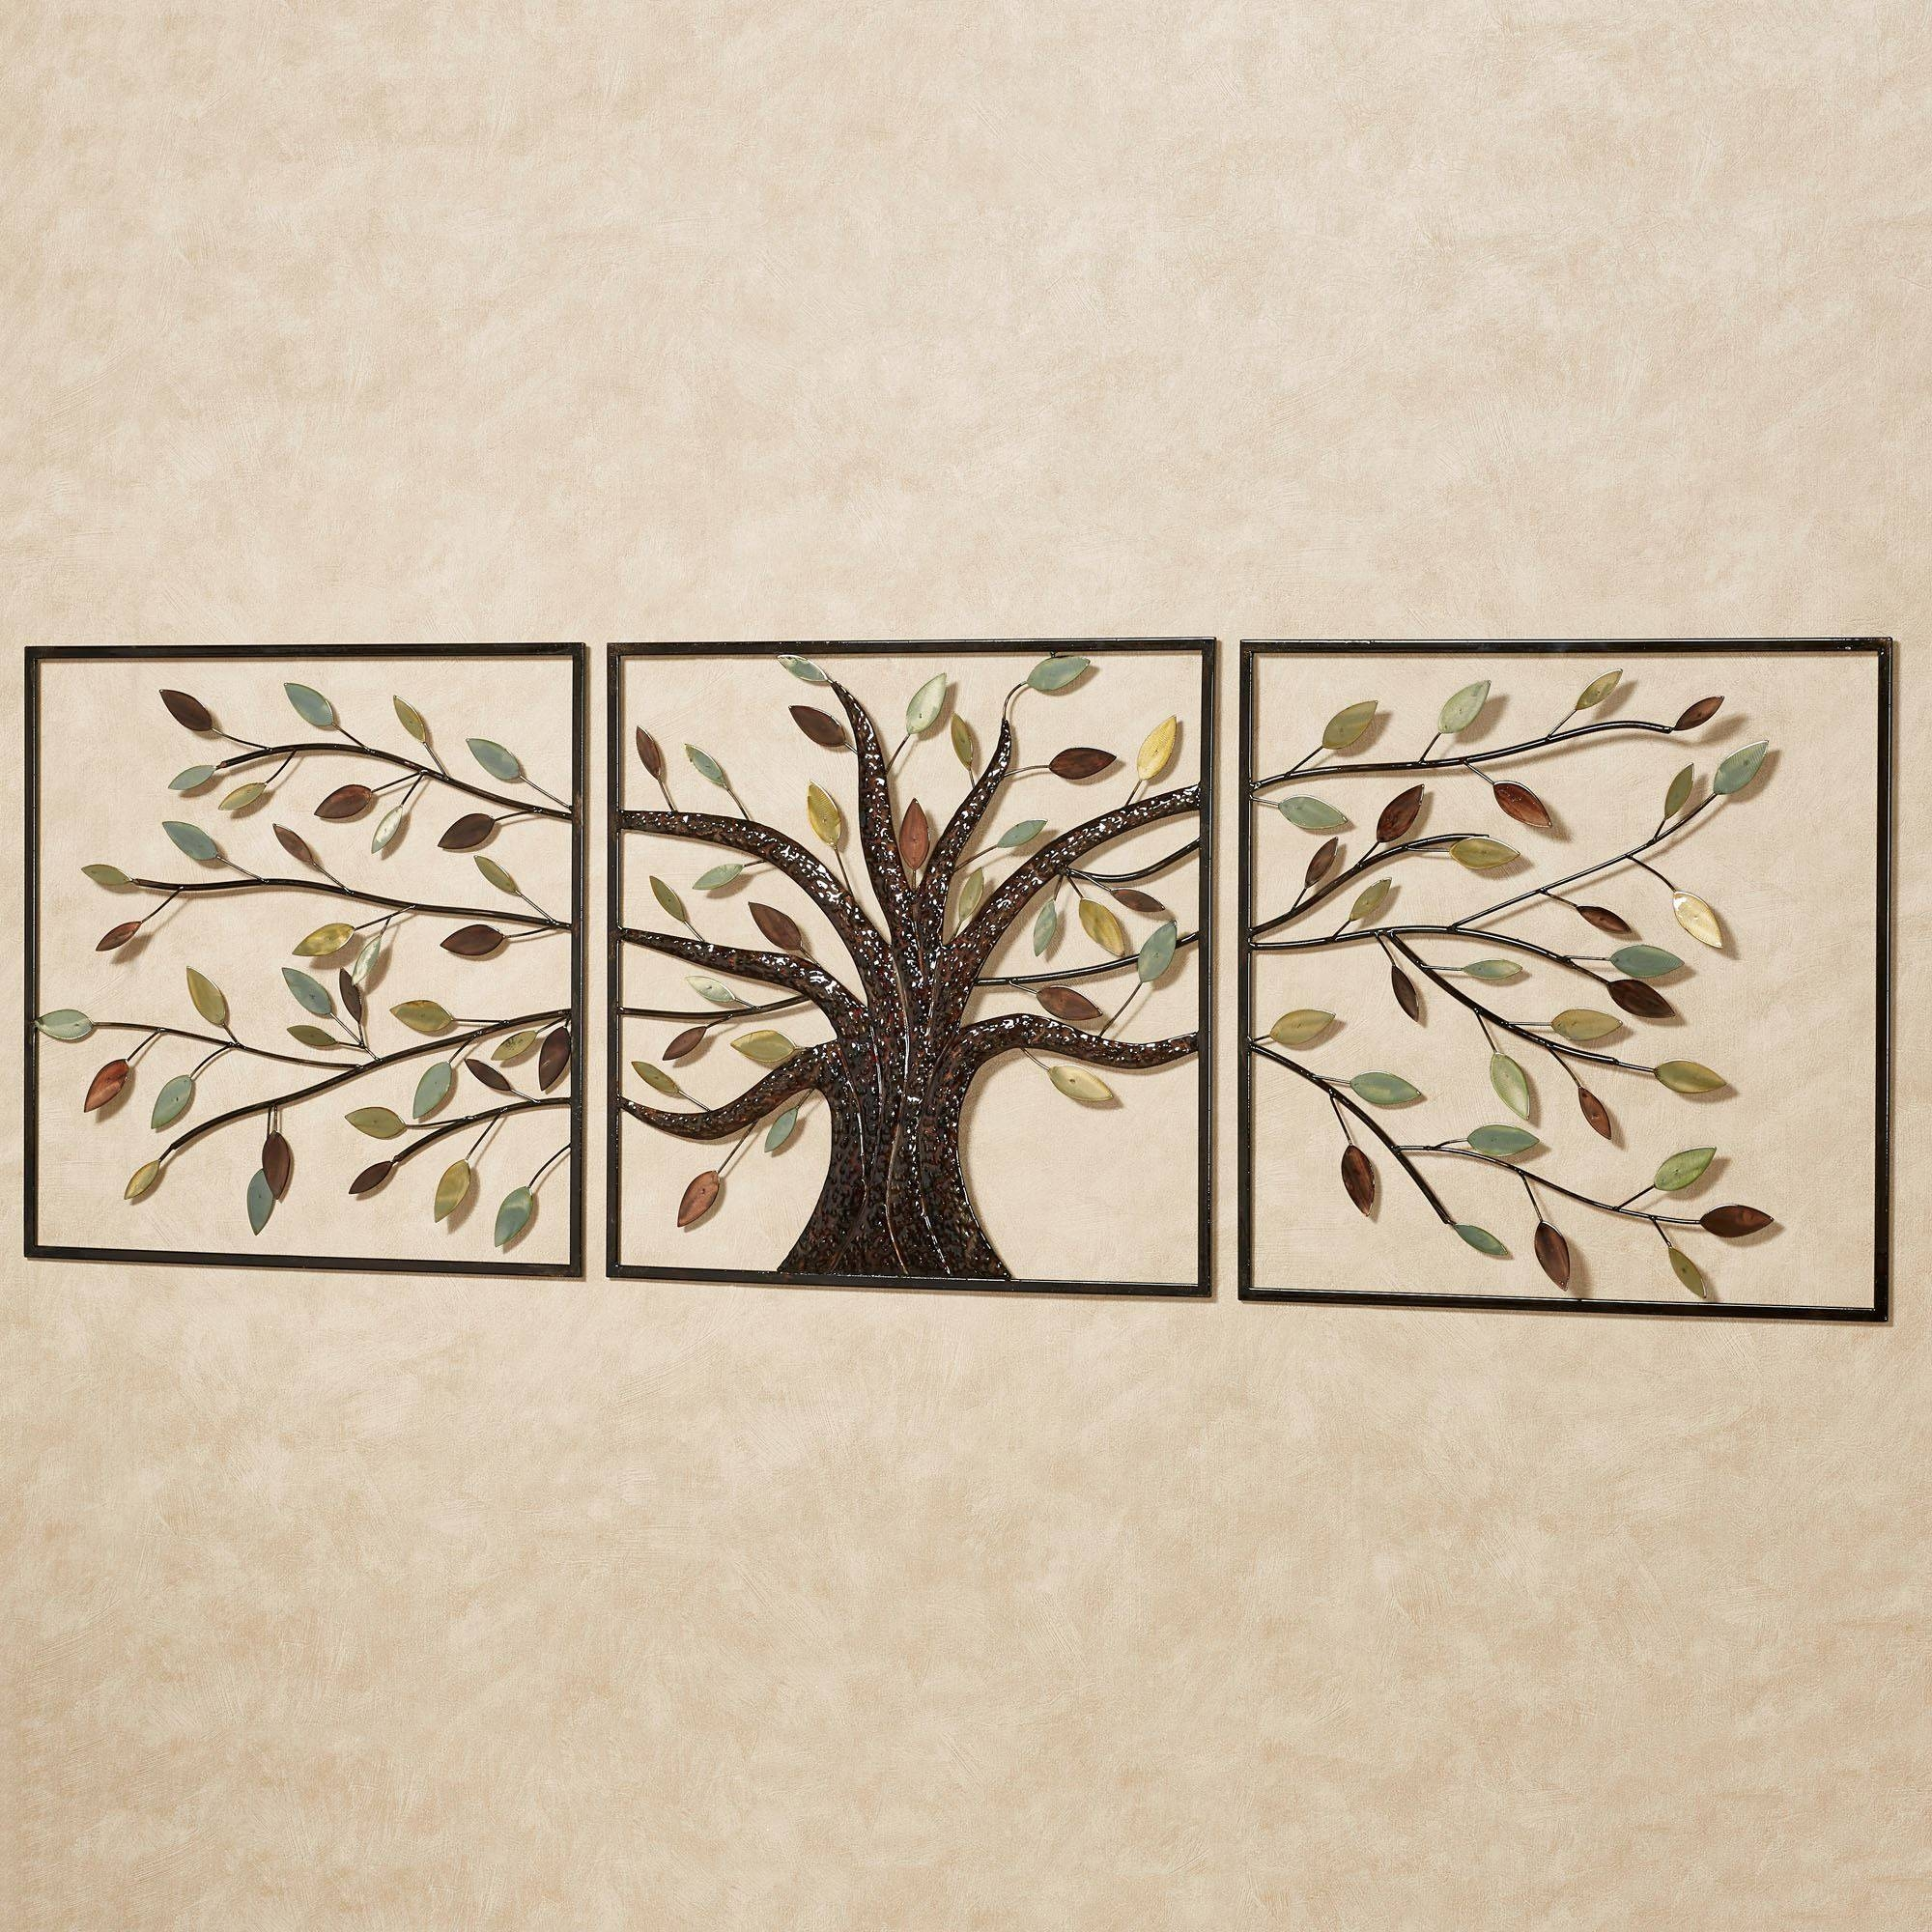 Ever Changing Brown Tree Metal Wall Art Set Intended For Newest Metal Wall Art Trees And Branches (View 2 of 18)